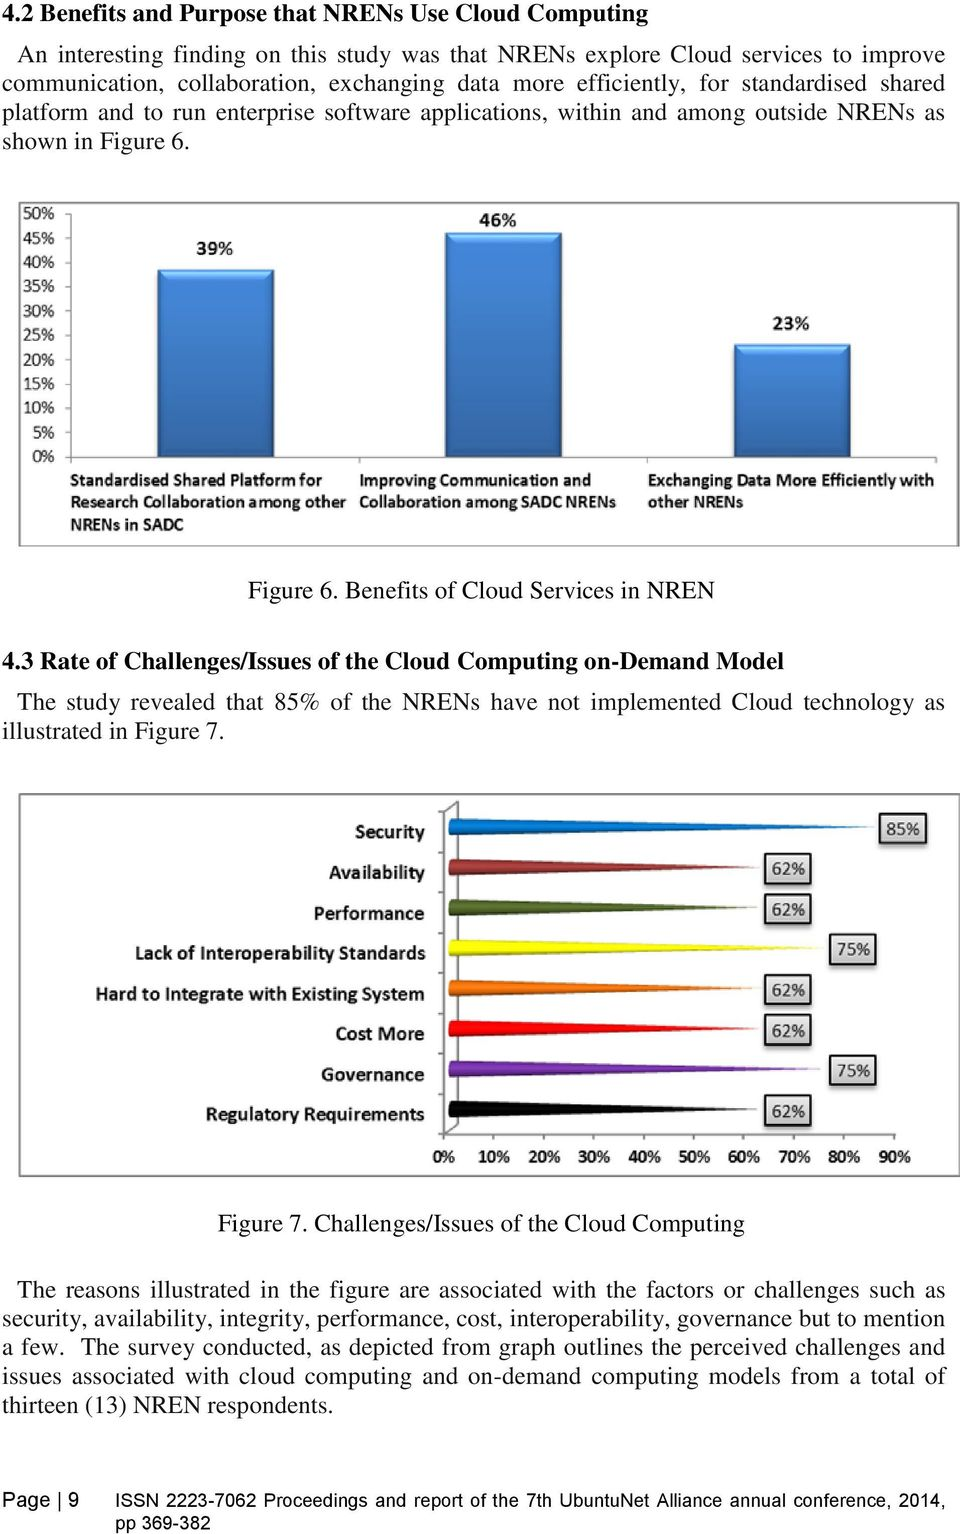 3 Rate of Challenges/Issues of the Cloud Computing on-demand Model The study revealed that 85% of the NRENs have not implemented Cloud technology as illustrated in Figure 7.